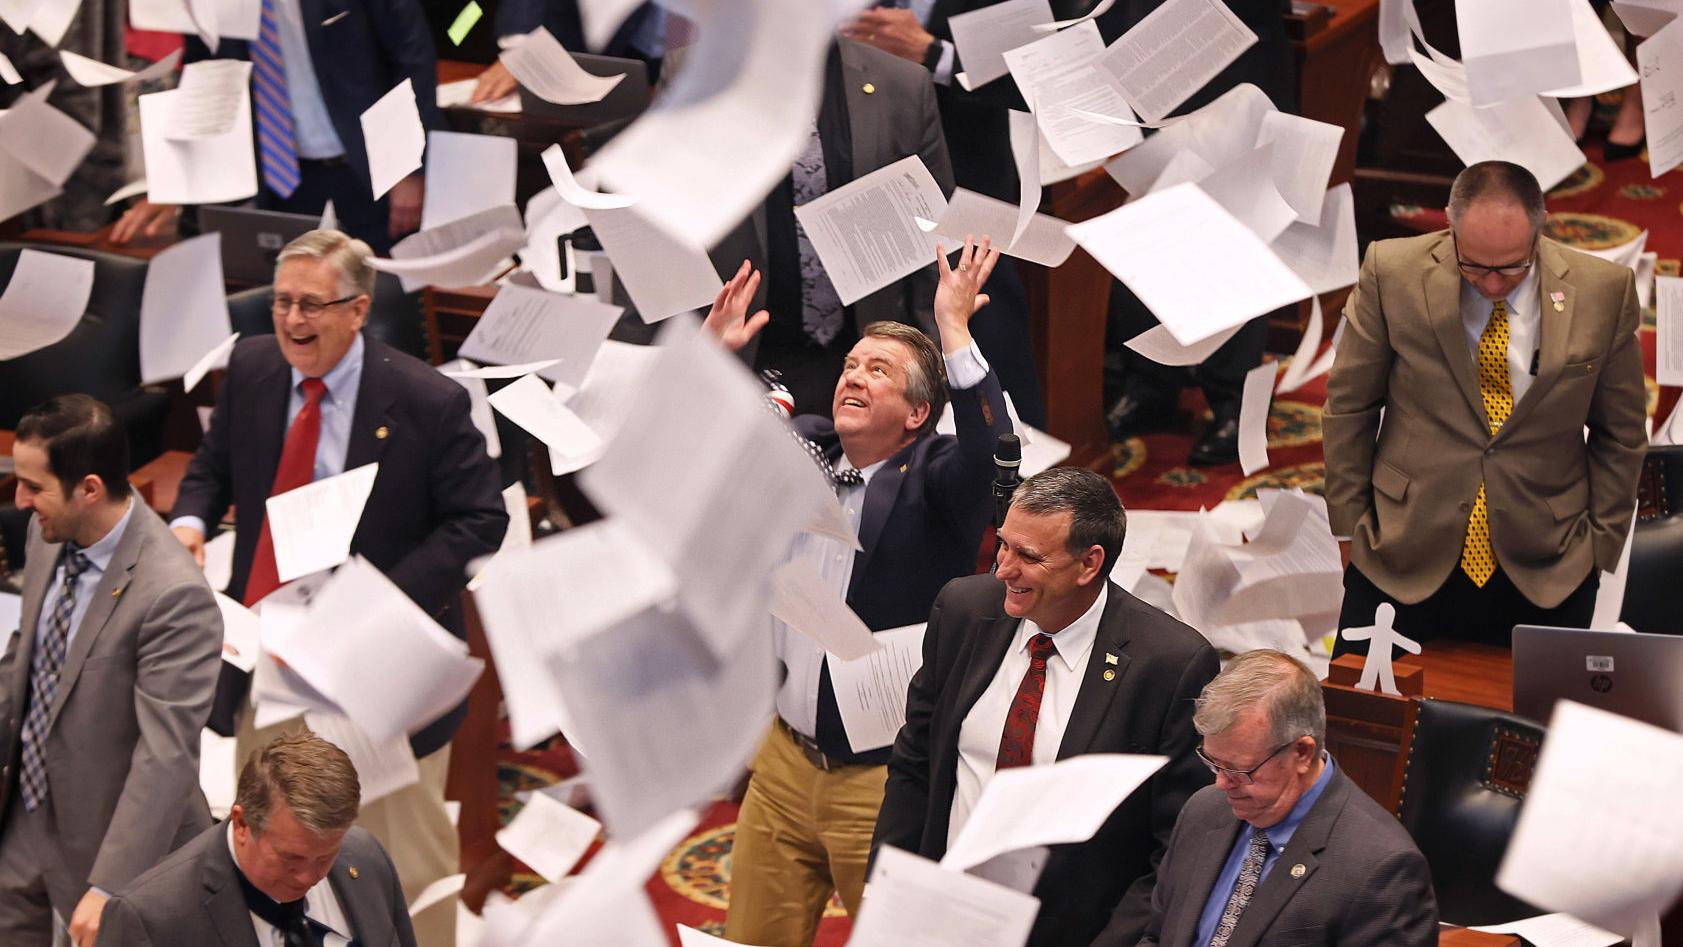 Editorial: After refusing Medicaid expansion, Missouri Republicans now endanger the whole program.